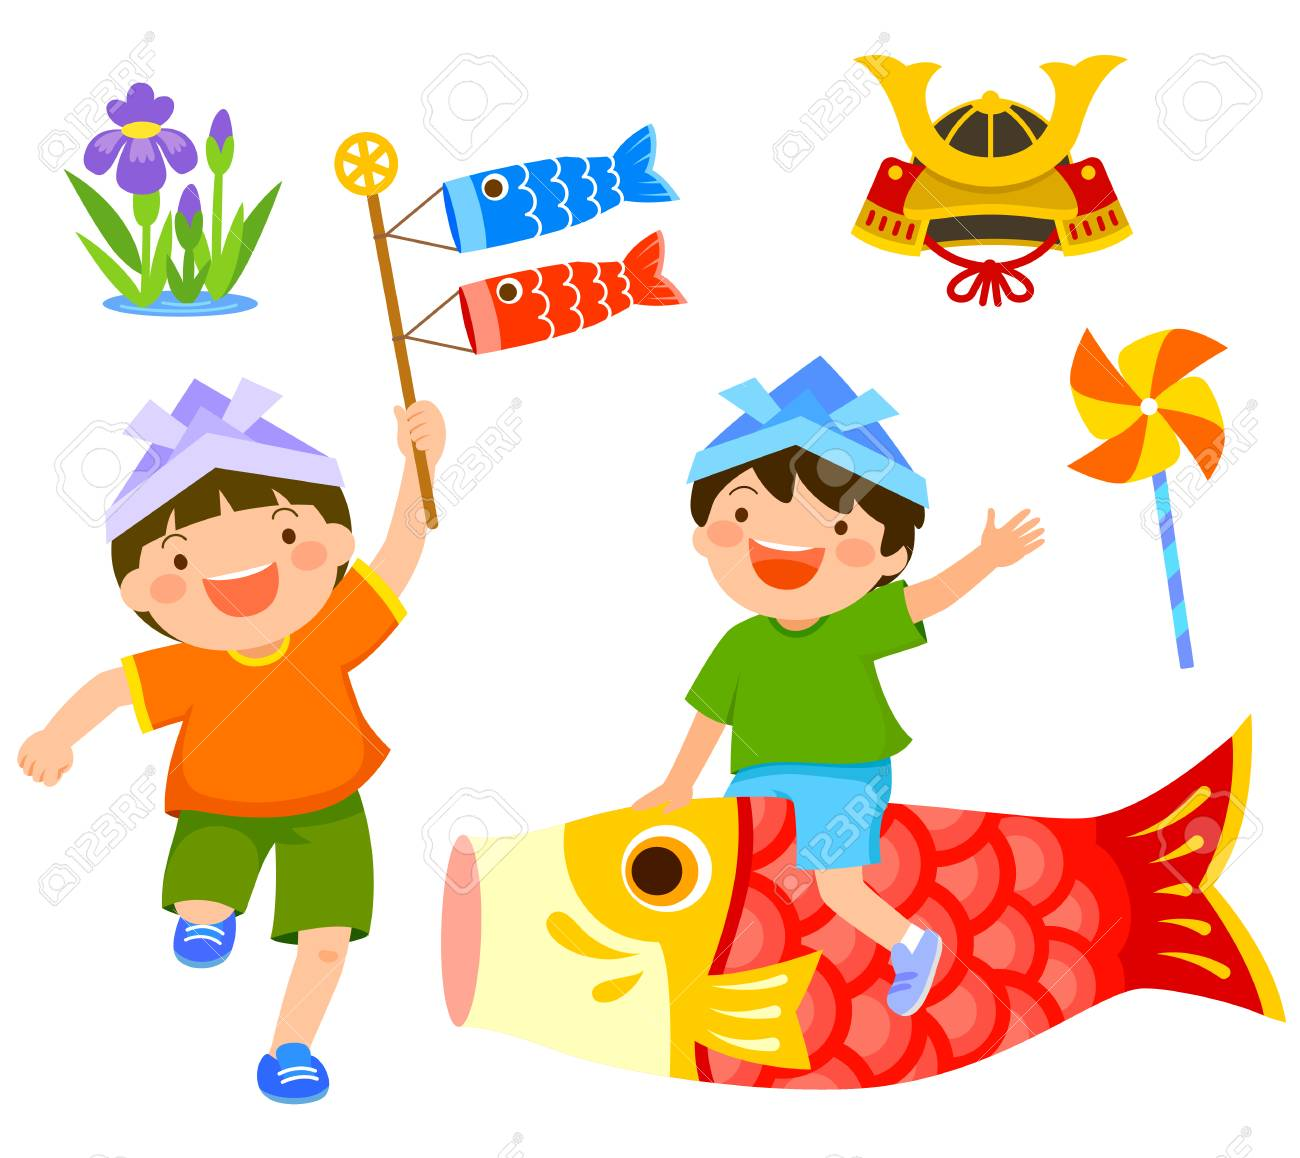 Japan's children's day clip art set. Boy riding a carp and another...